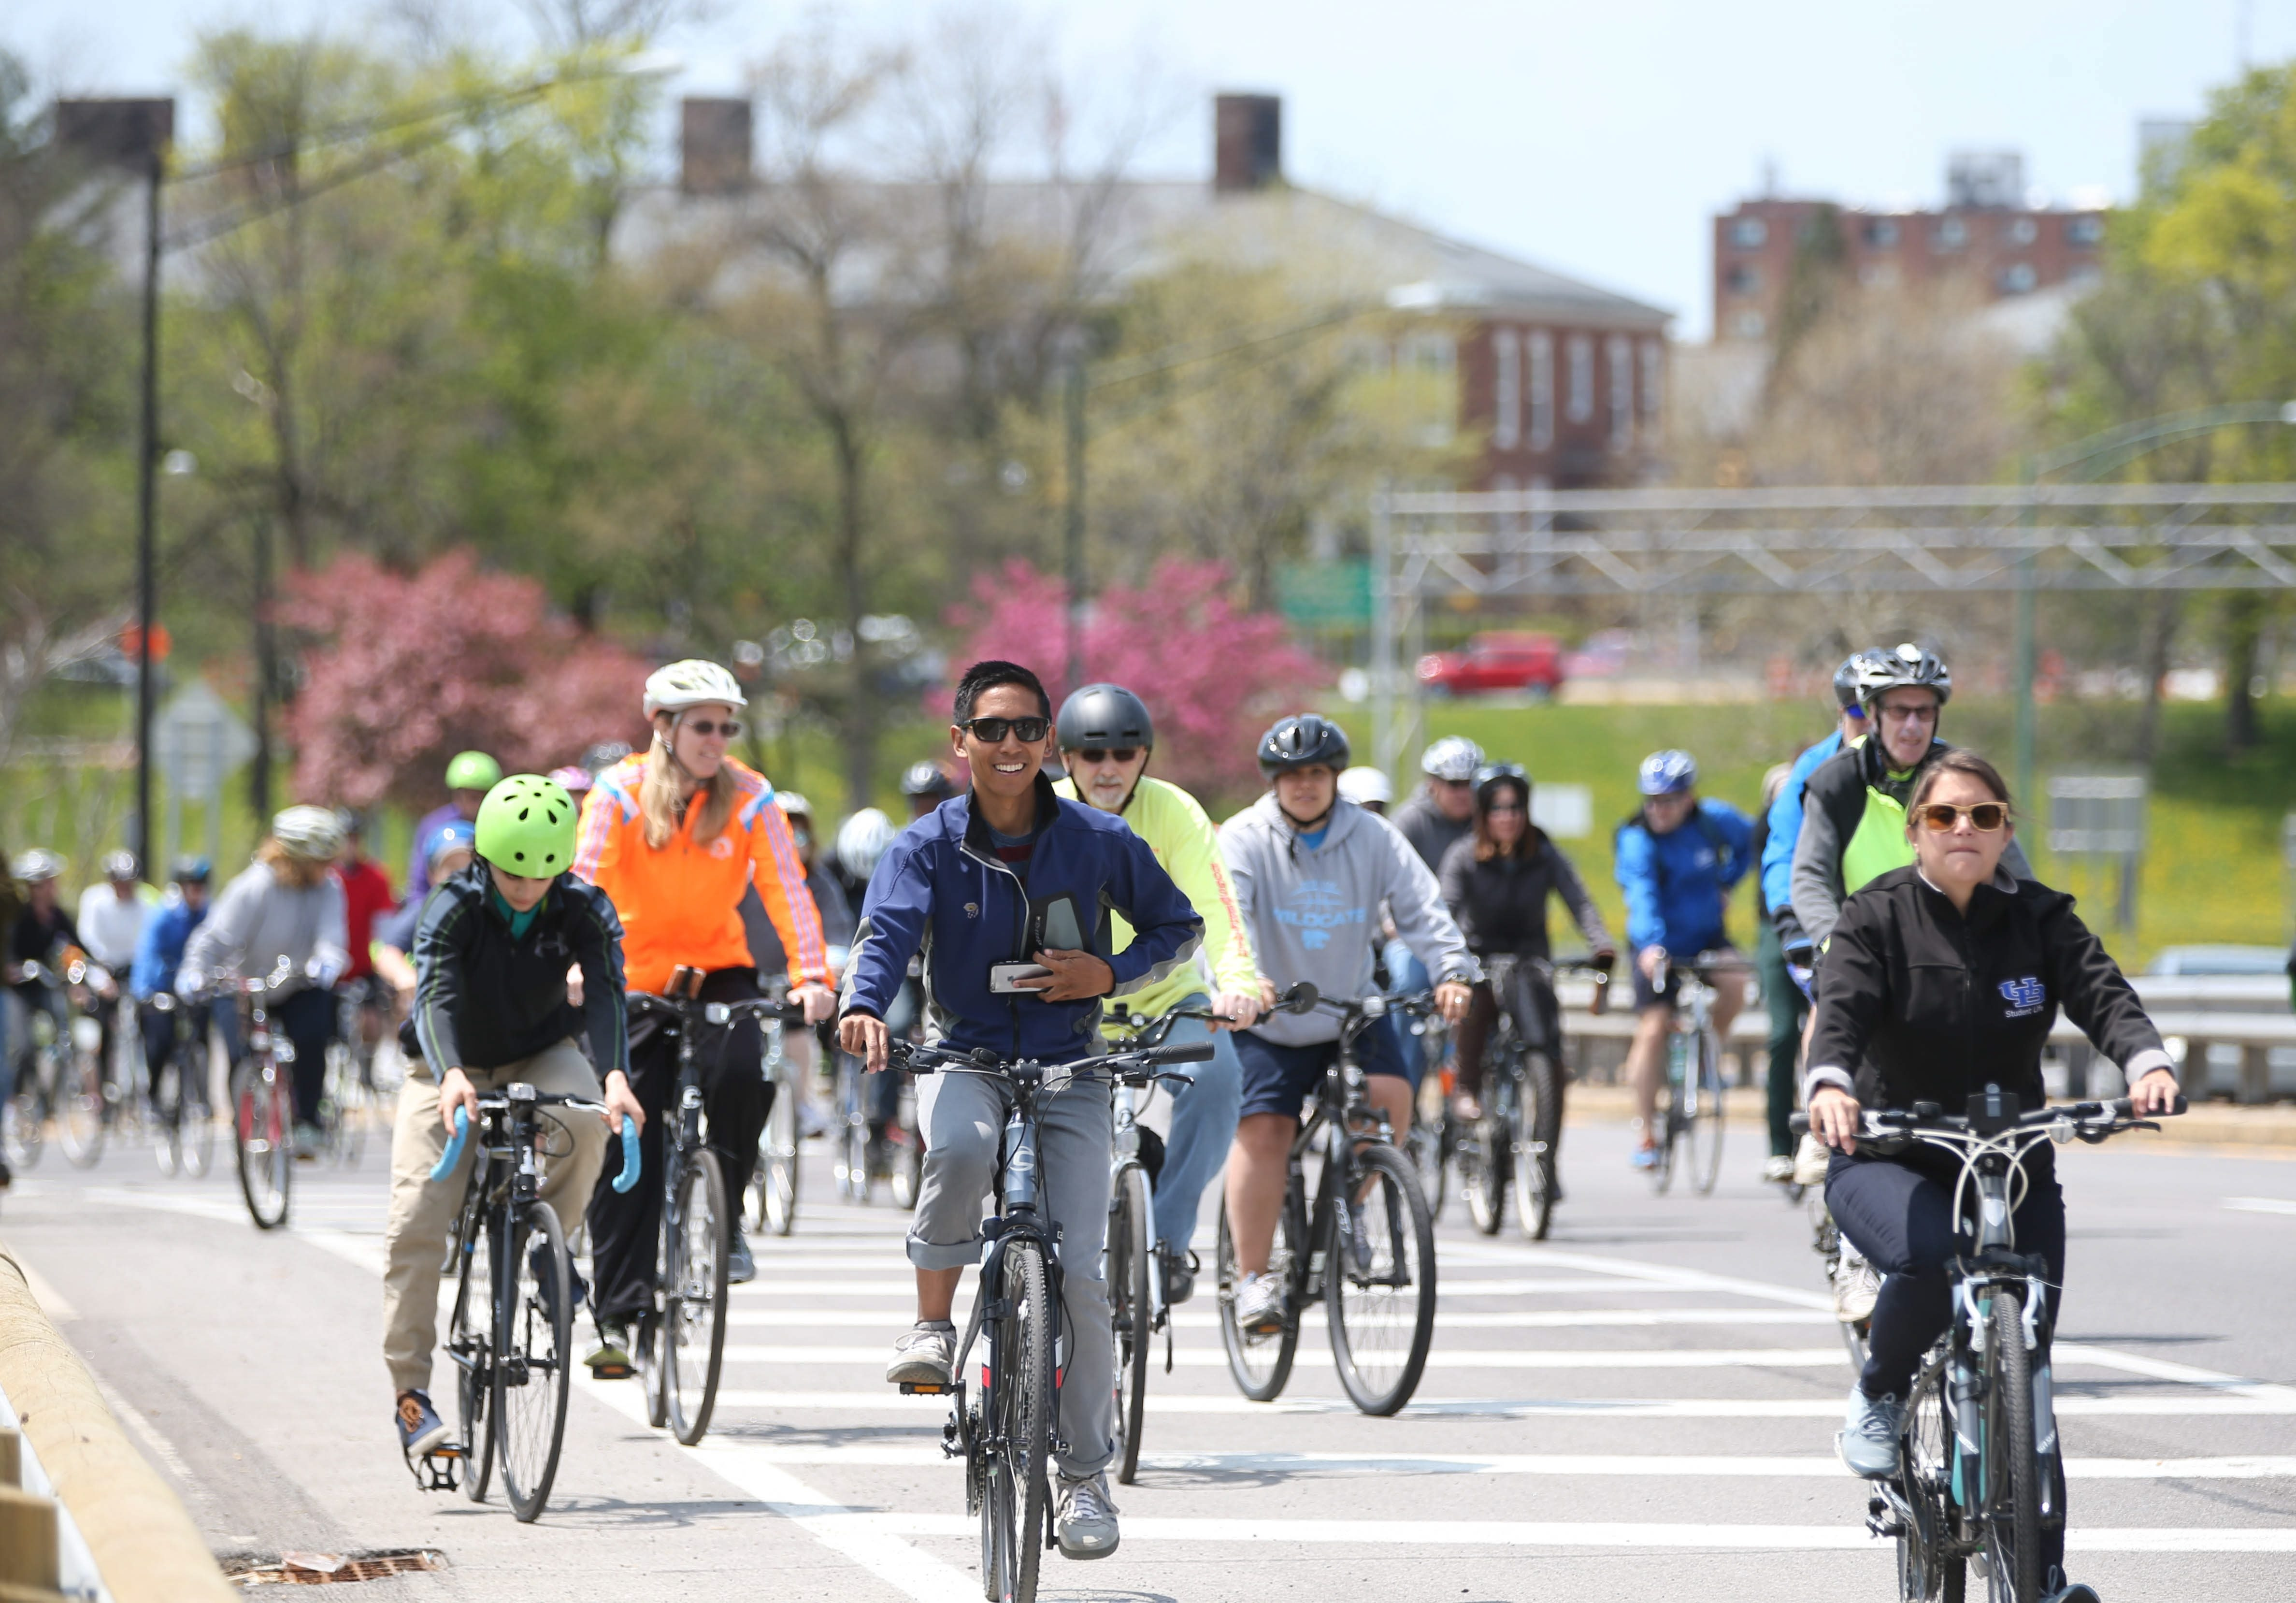 Bicyclists on the first Slow Roll Buffalo ride of 2016 rode on the Scajaquada Expressway to make a statement about downgrading the expressway to a bicycle and pedestrian-friendly boulevard.  (Sharon Cantillon/Buffalo News)